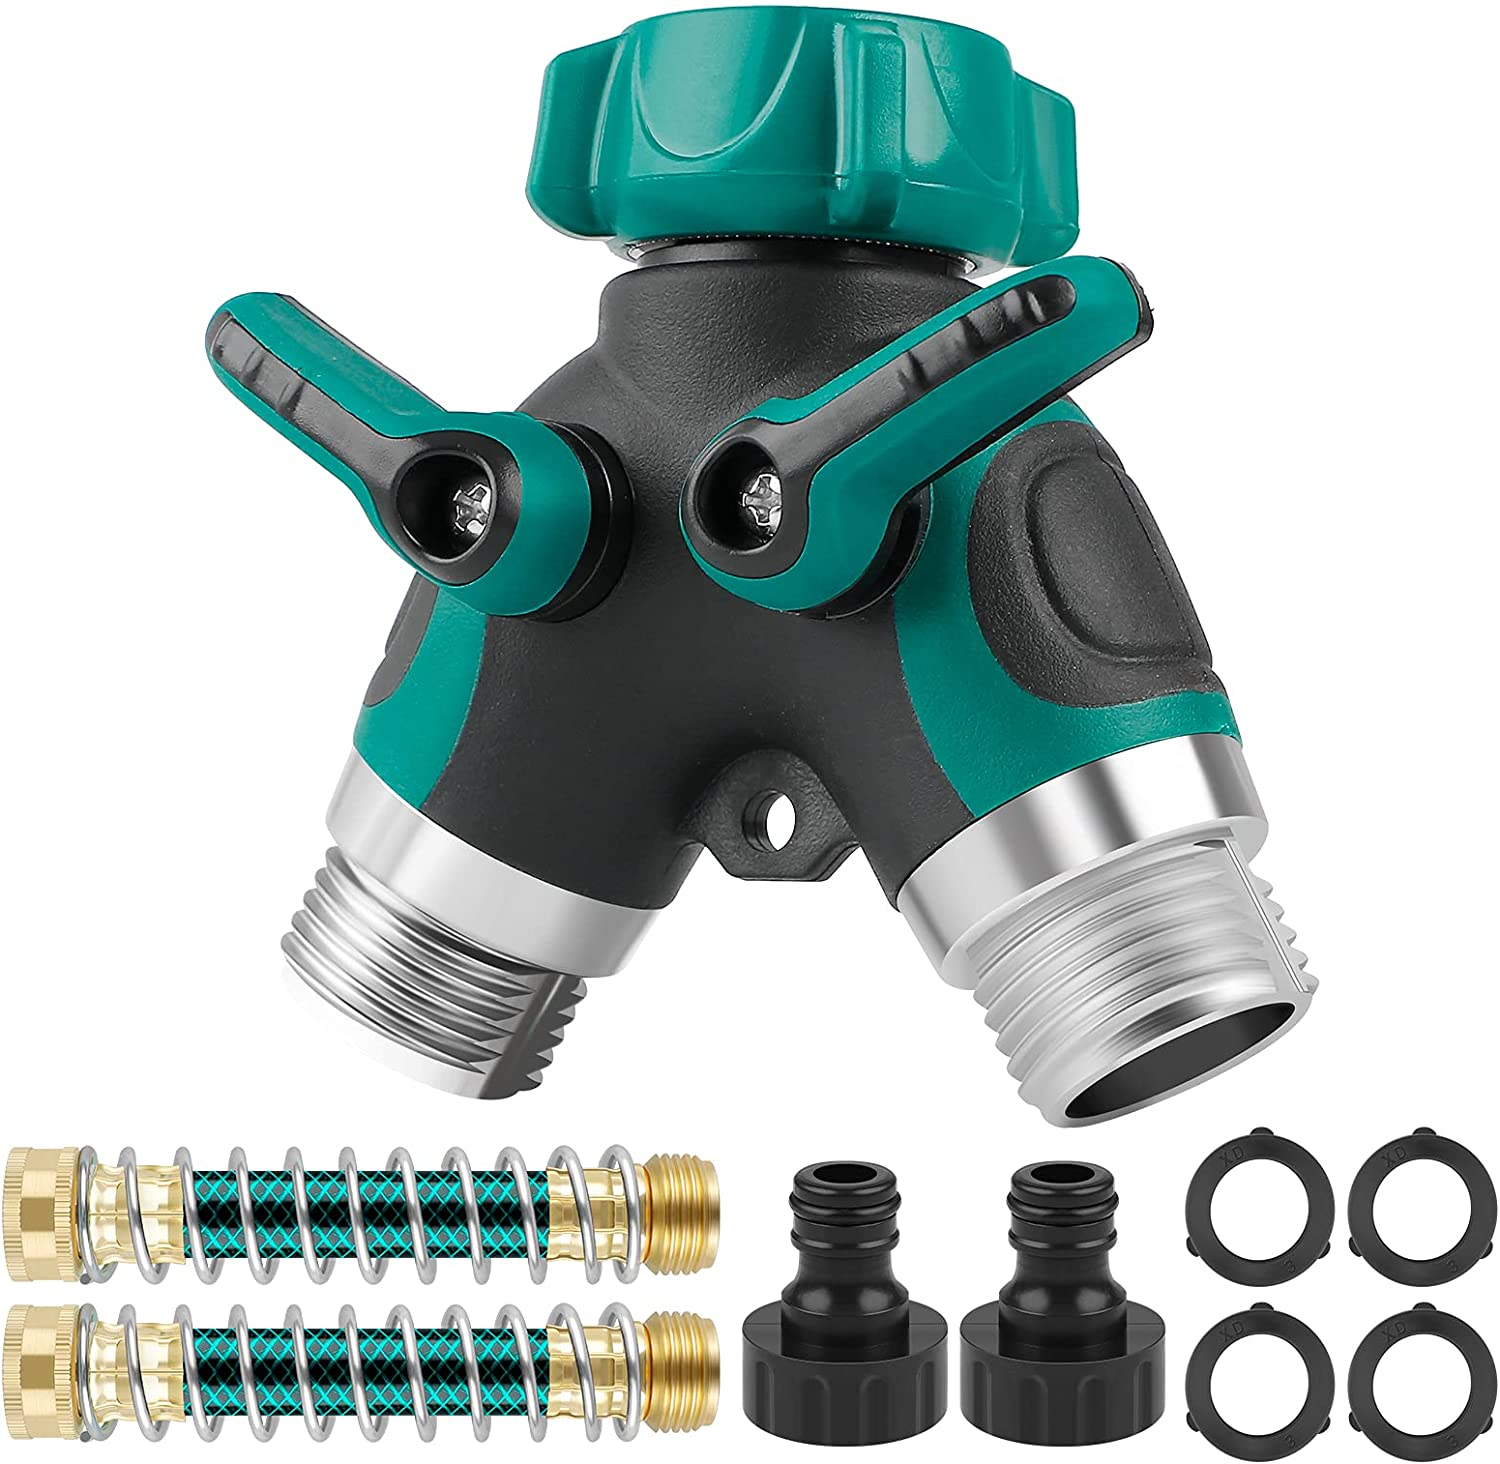 Water Garden Hose Y Splitter - 2 Way Valves Leakproof Dual Metal Spigot Nozzle Connector for Outdoor with 4 Extra Rubber Washers 2 Coiled Spring Tubes 2 Adapters